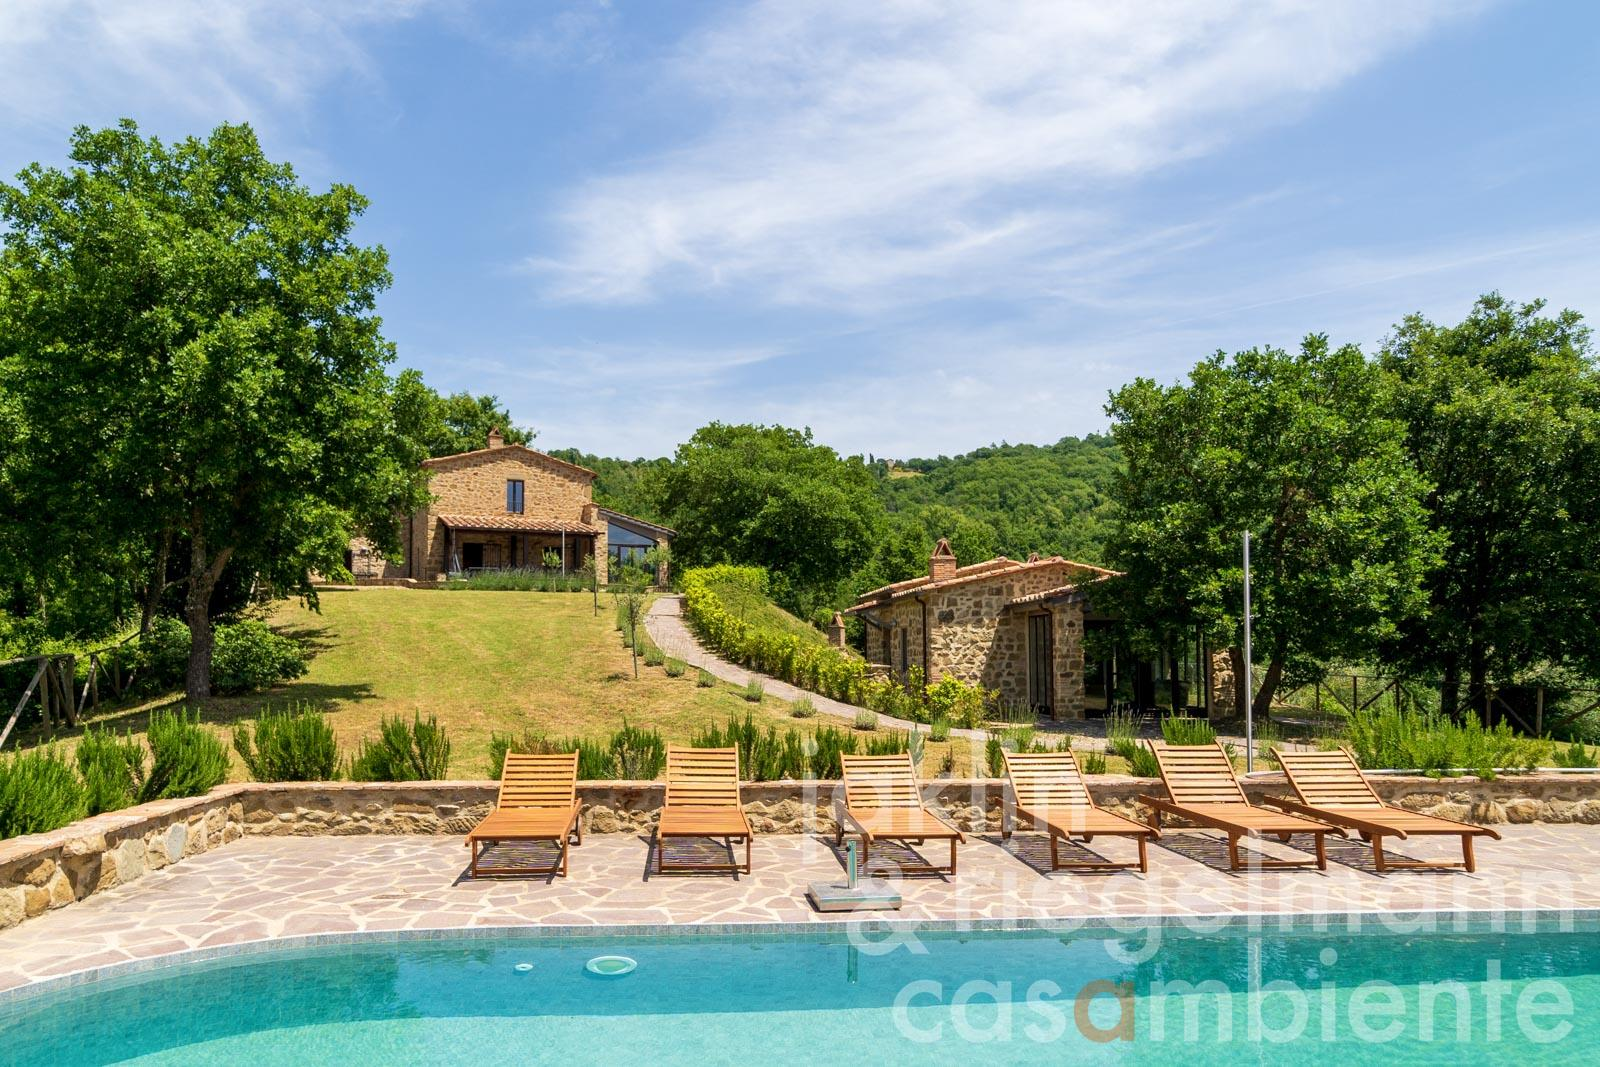 Farmhouse with annexe and pool with scenic views of the Medieval village of Preggio in Umbria